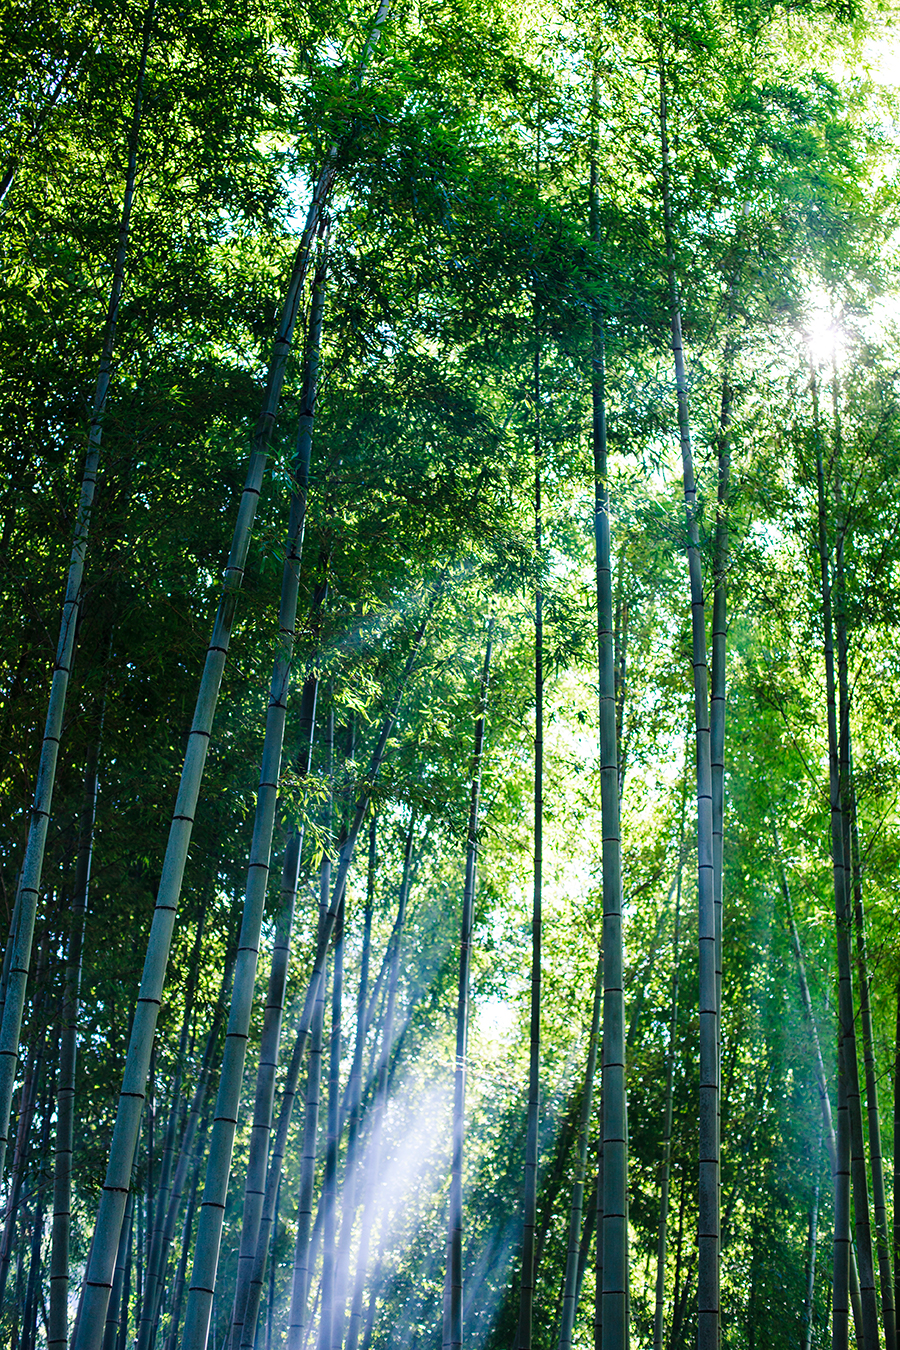 Sunlight filtering in the bamboo forest at Fushimi Inari in Kyoto, Japan.